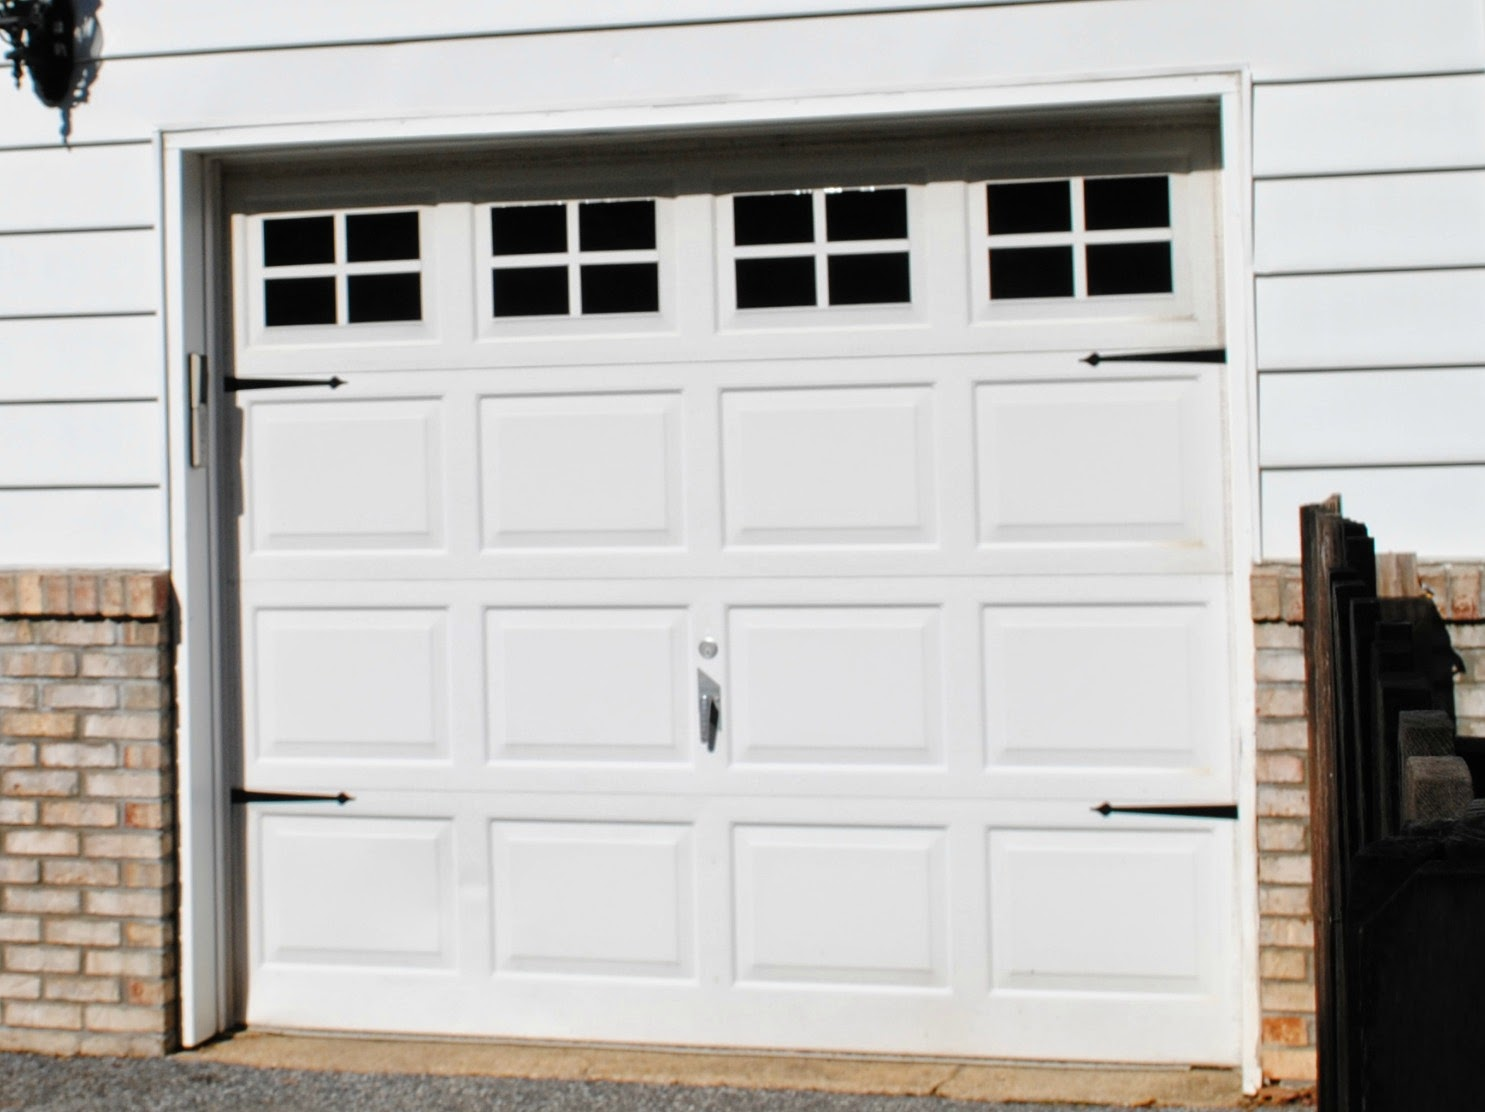 Diy vinyl faux carriage garage doors free studio file for Build carriage garage doors